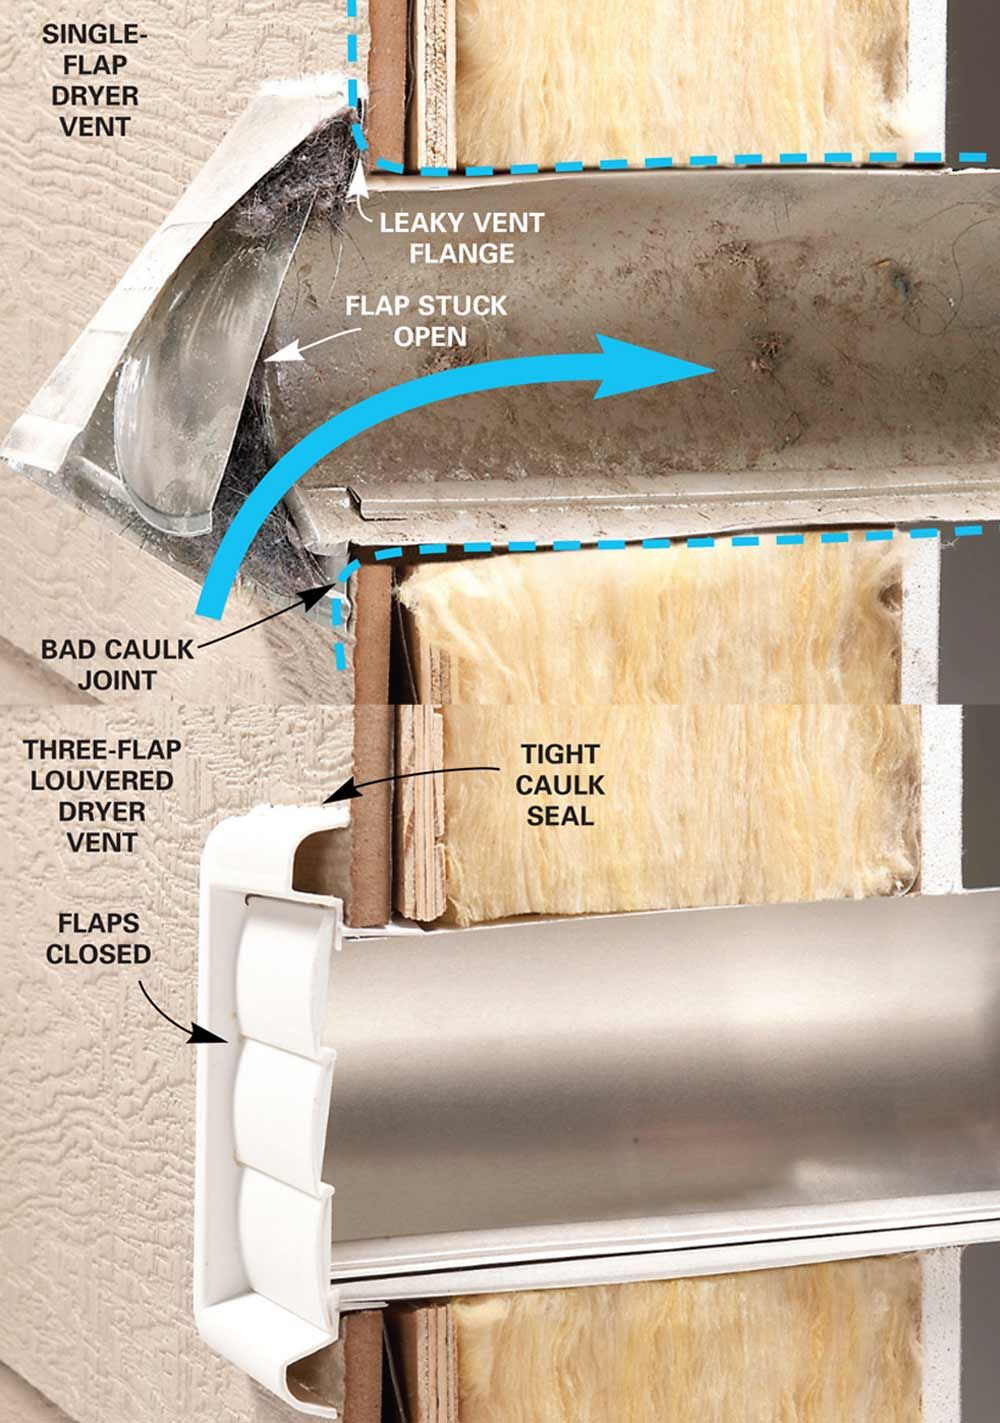 Slash Heating Bills Heating Bill Dryer Vent Laundry Room Design